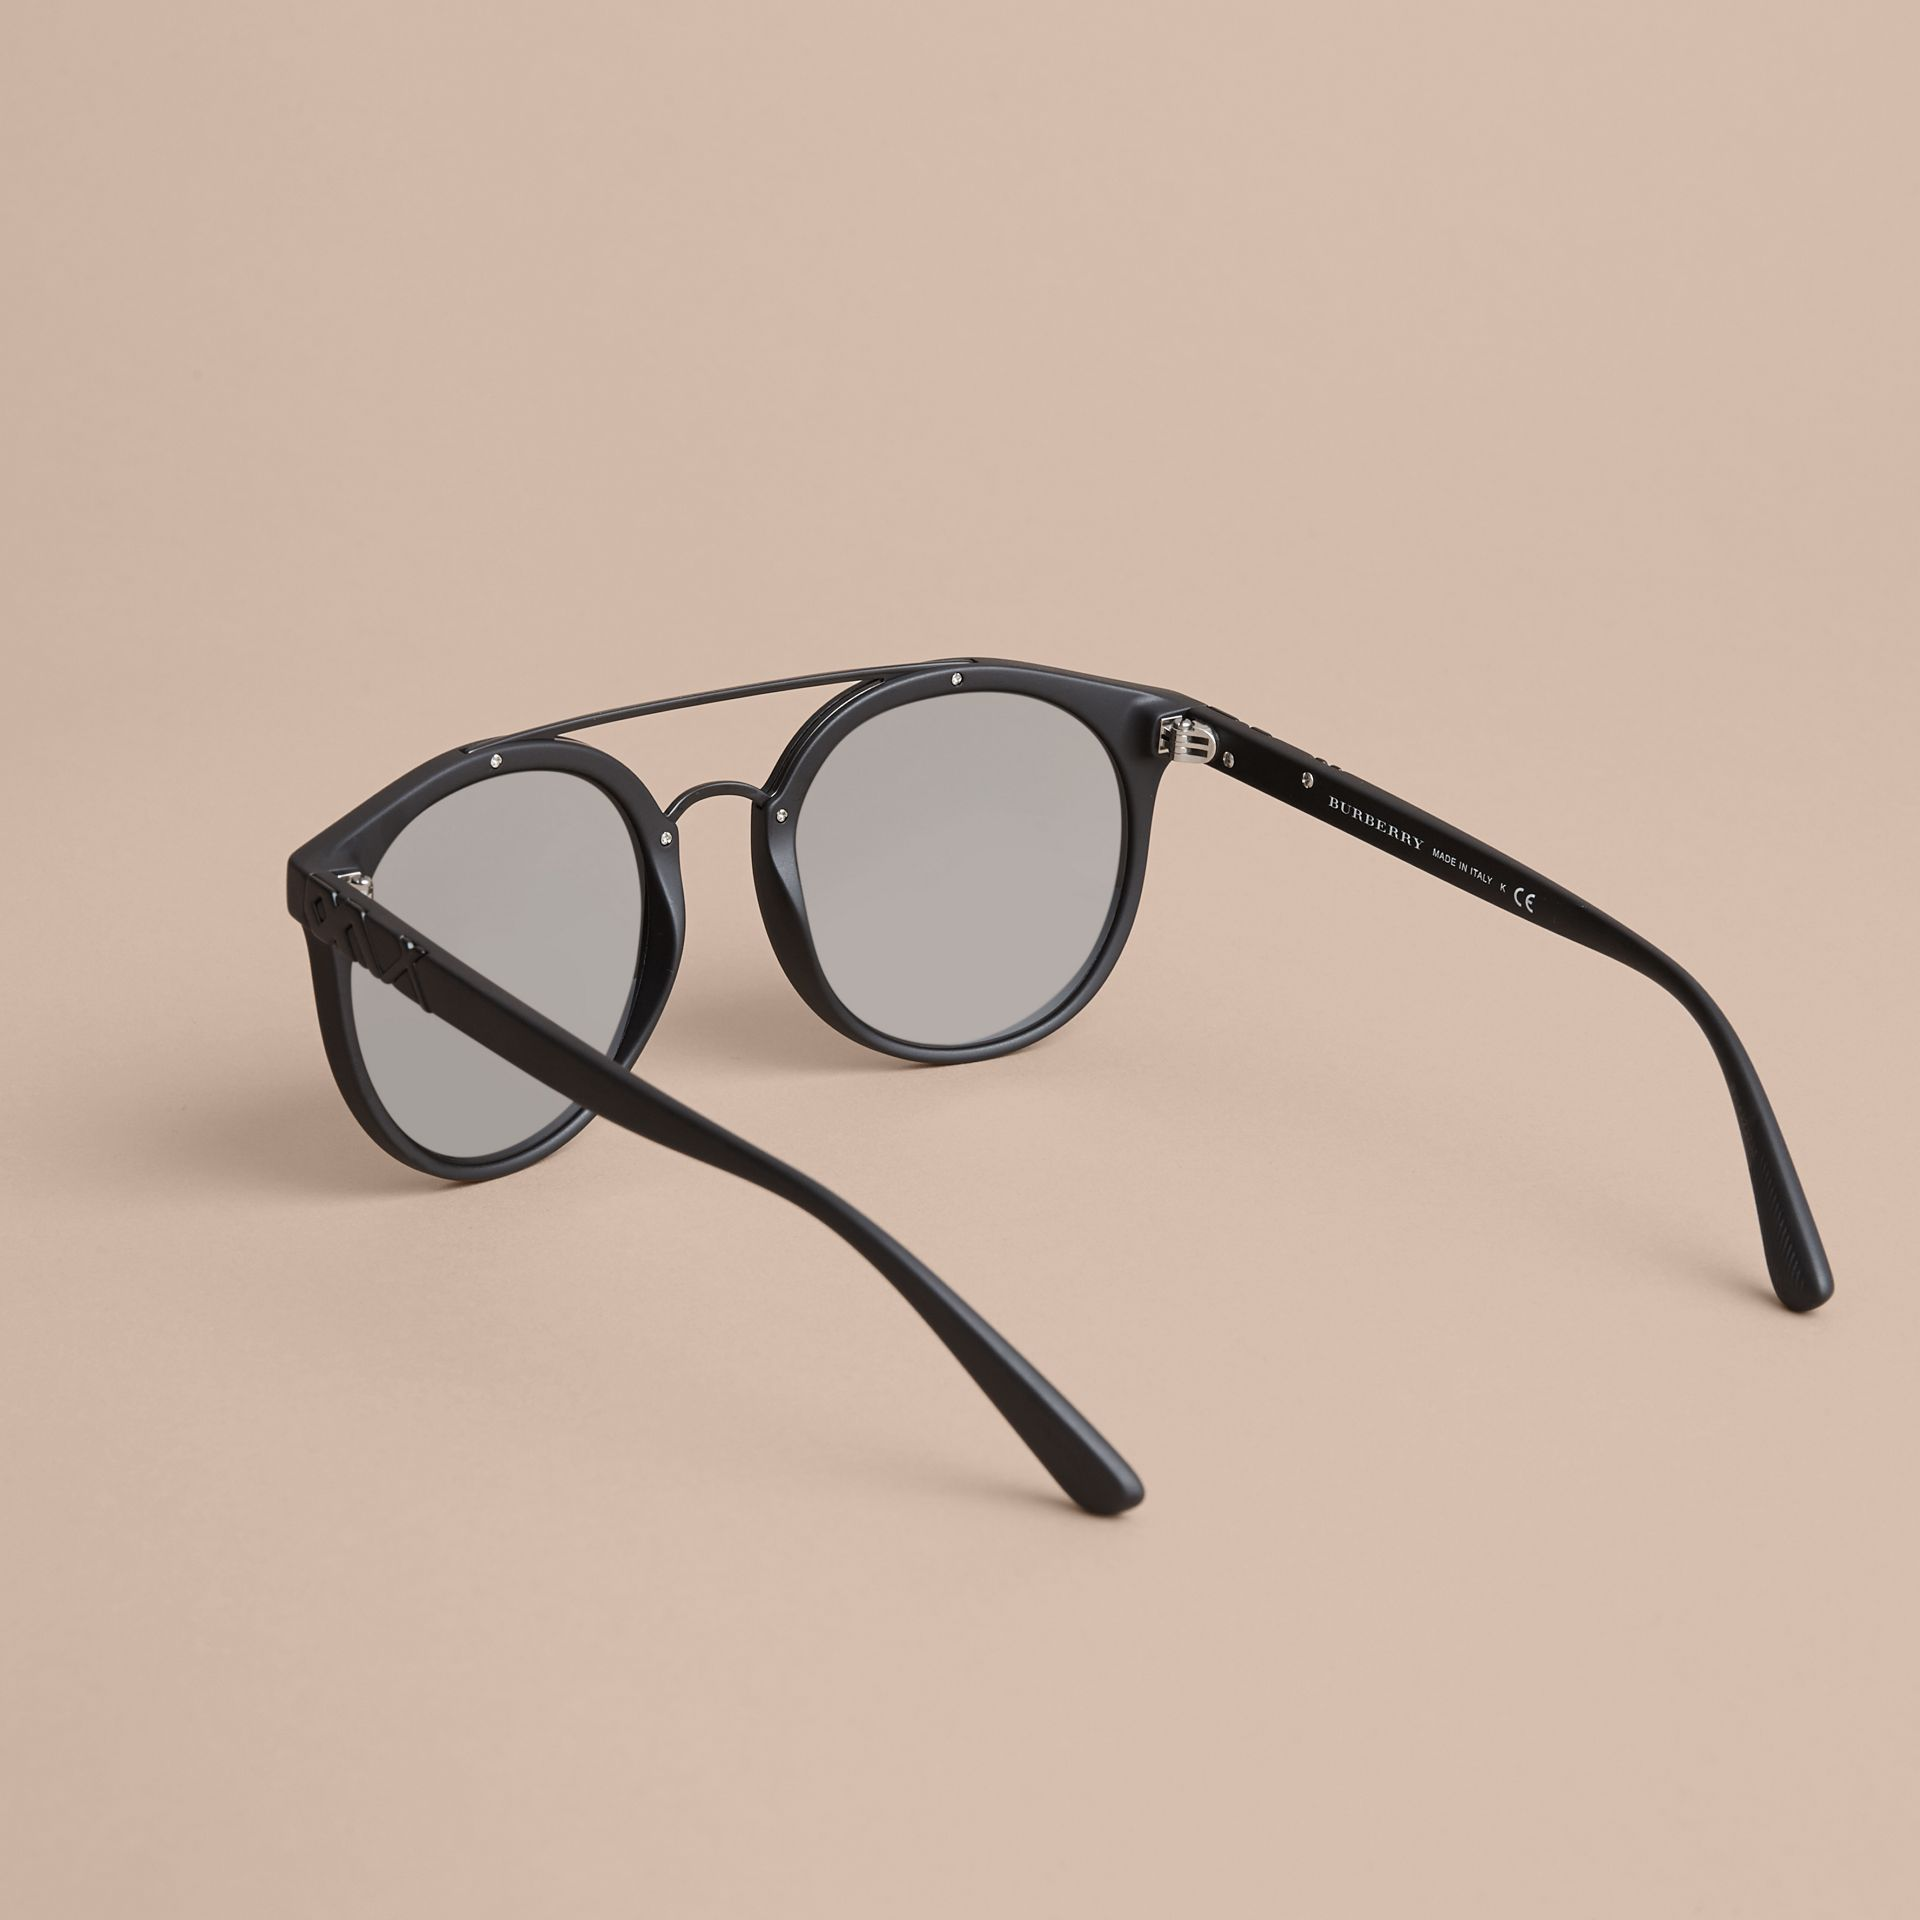 Top Bar Round Frame Sunglasses in Black - Men | Burberry United States - gallery image 4